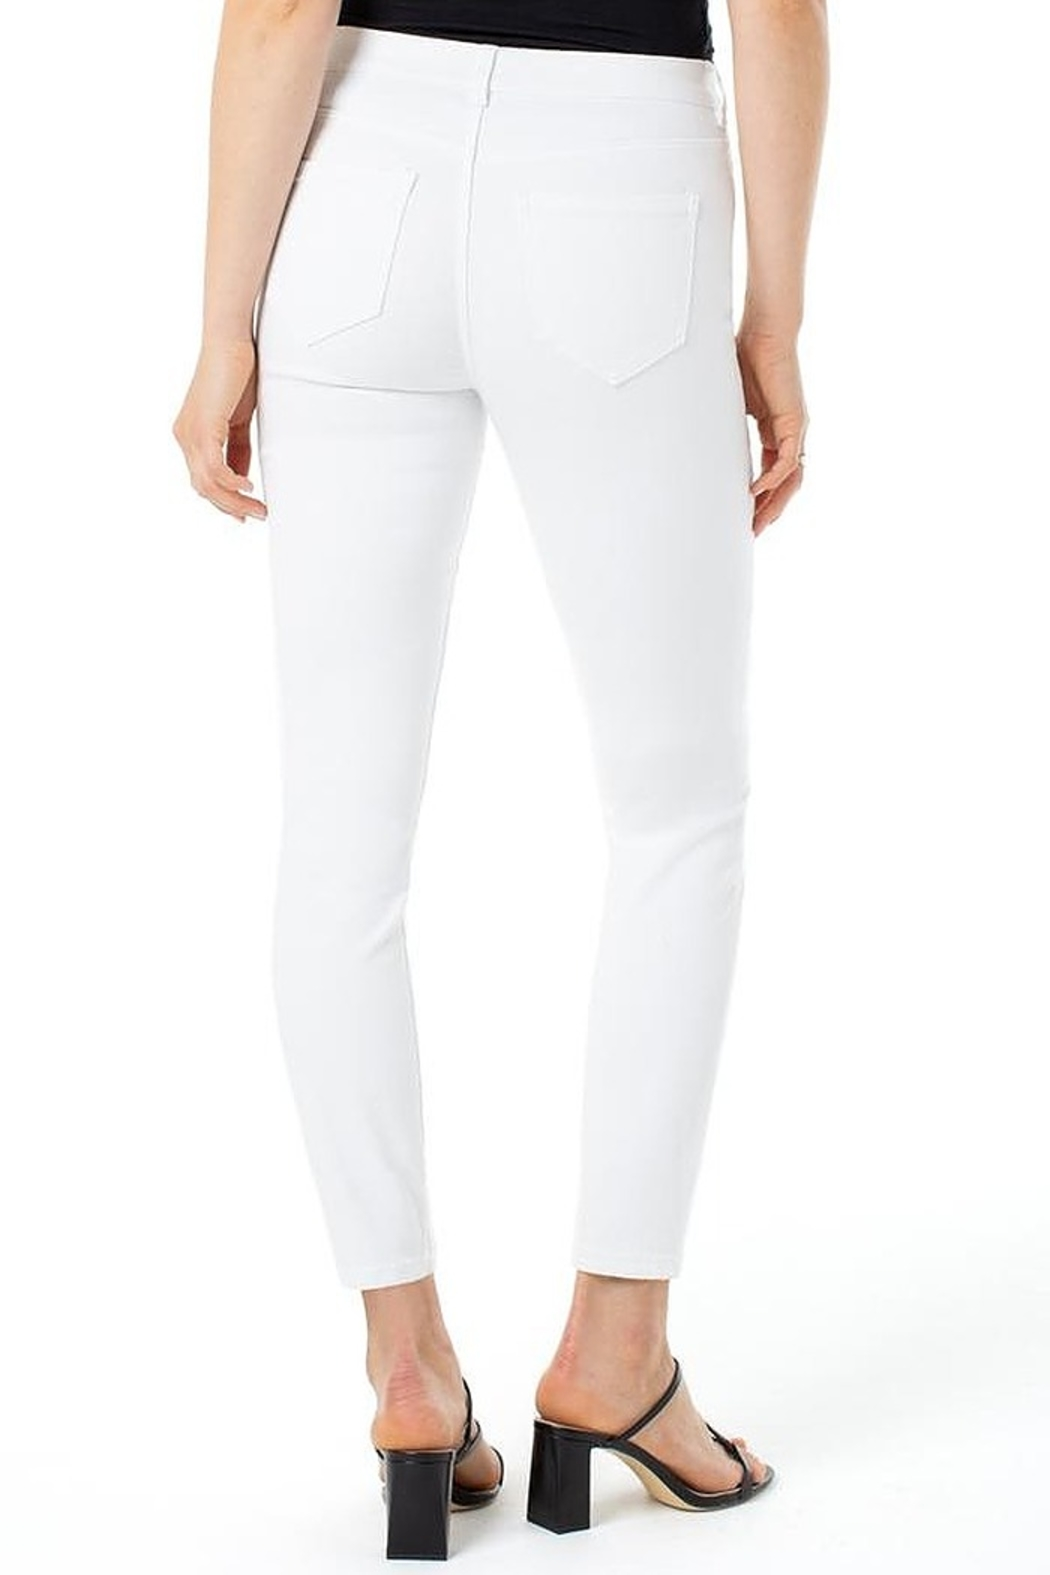 Liverpool  Gia White Glider Skinny - Side Cropped Image